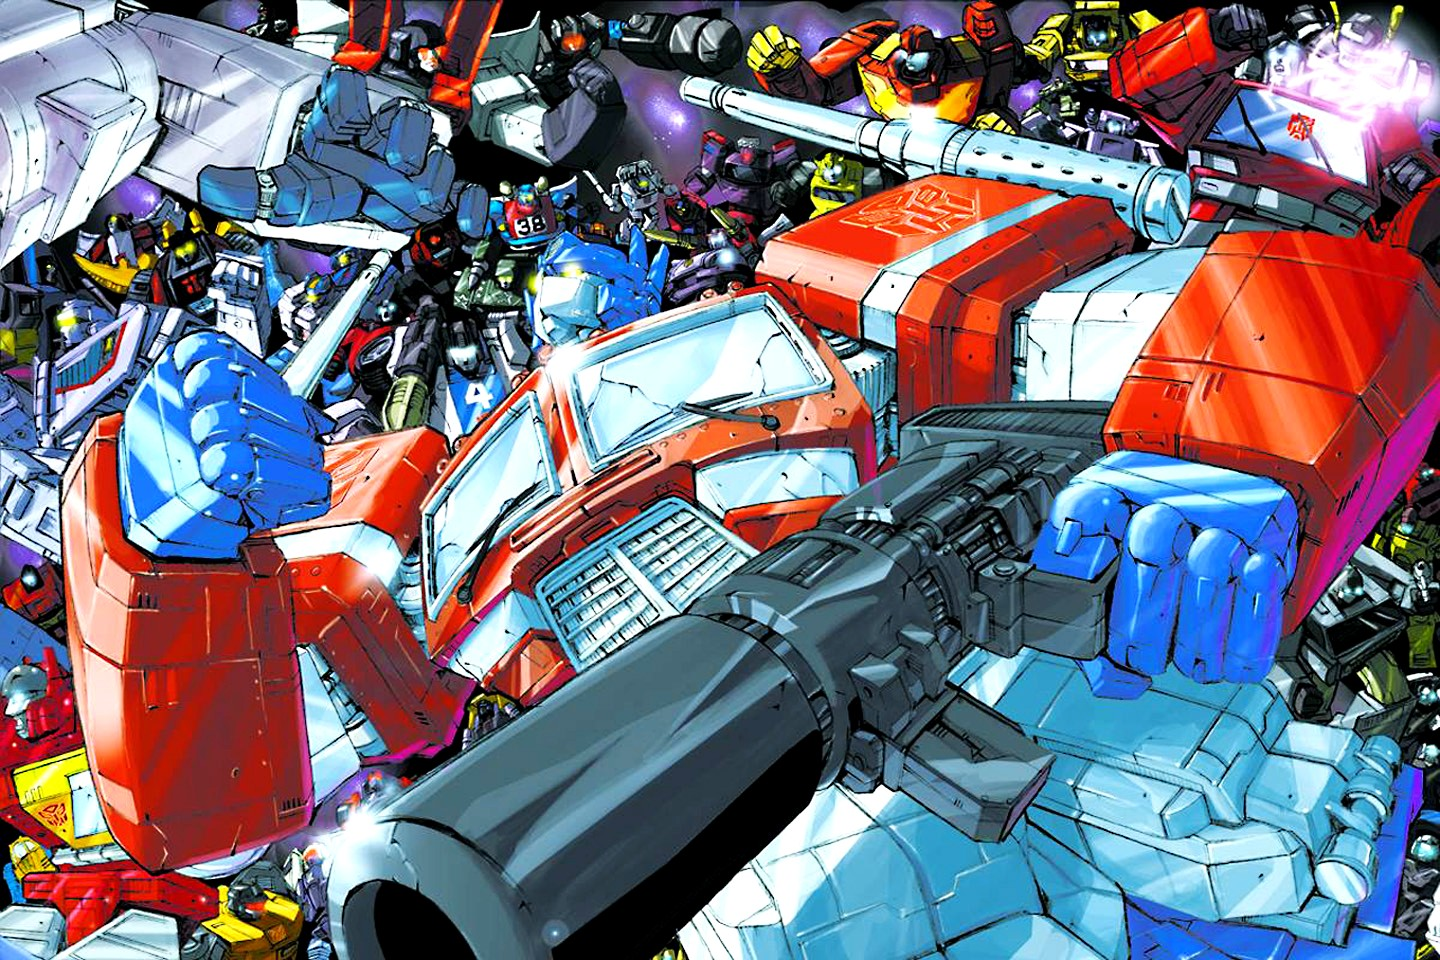 Free Download Transformer G1 Wallpapers Cc Truckformers